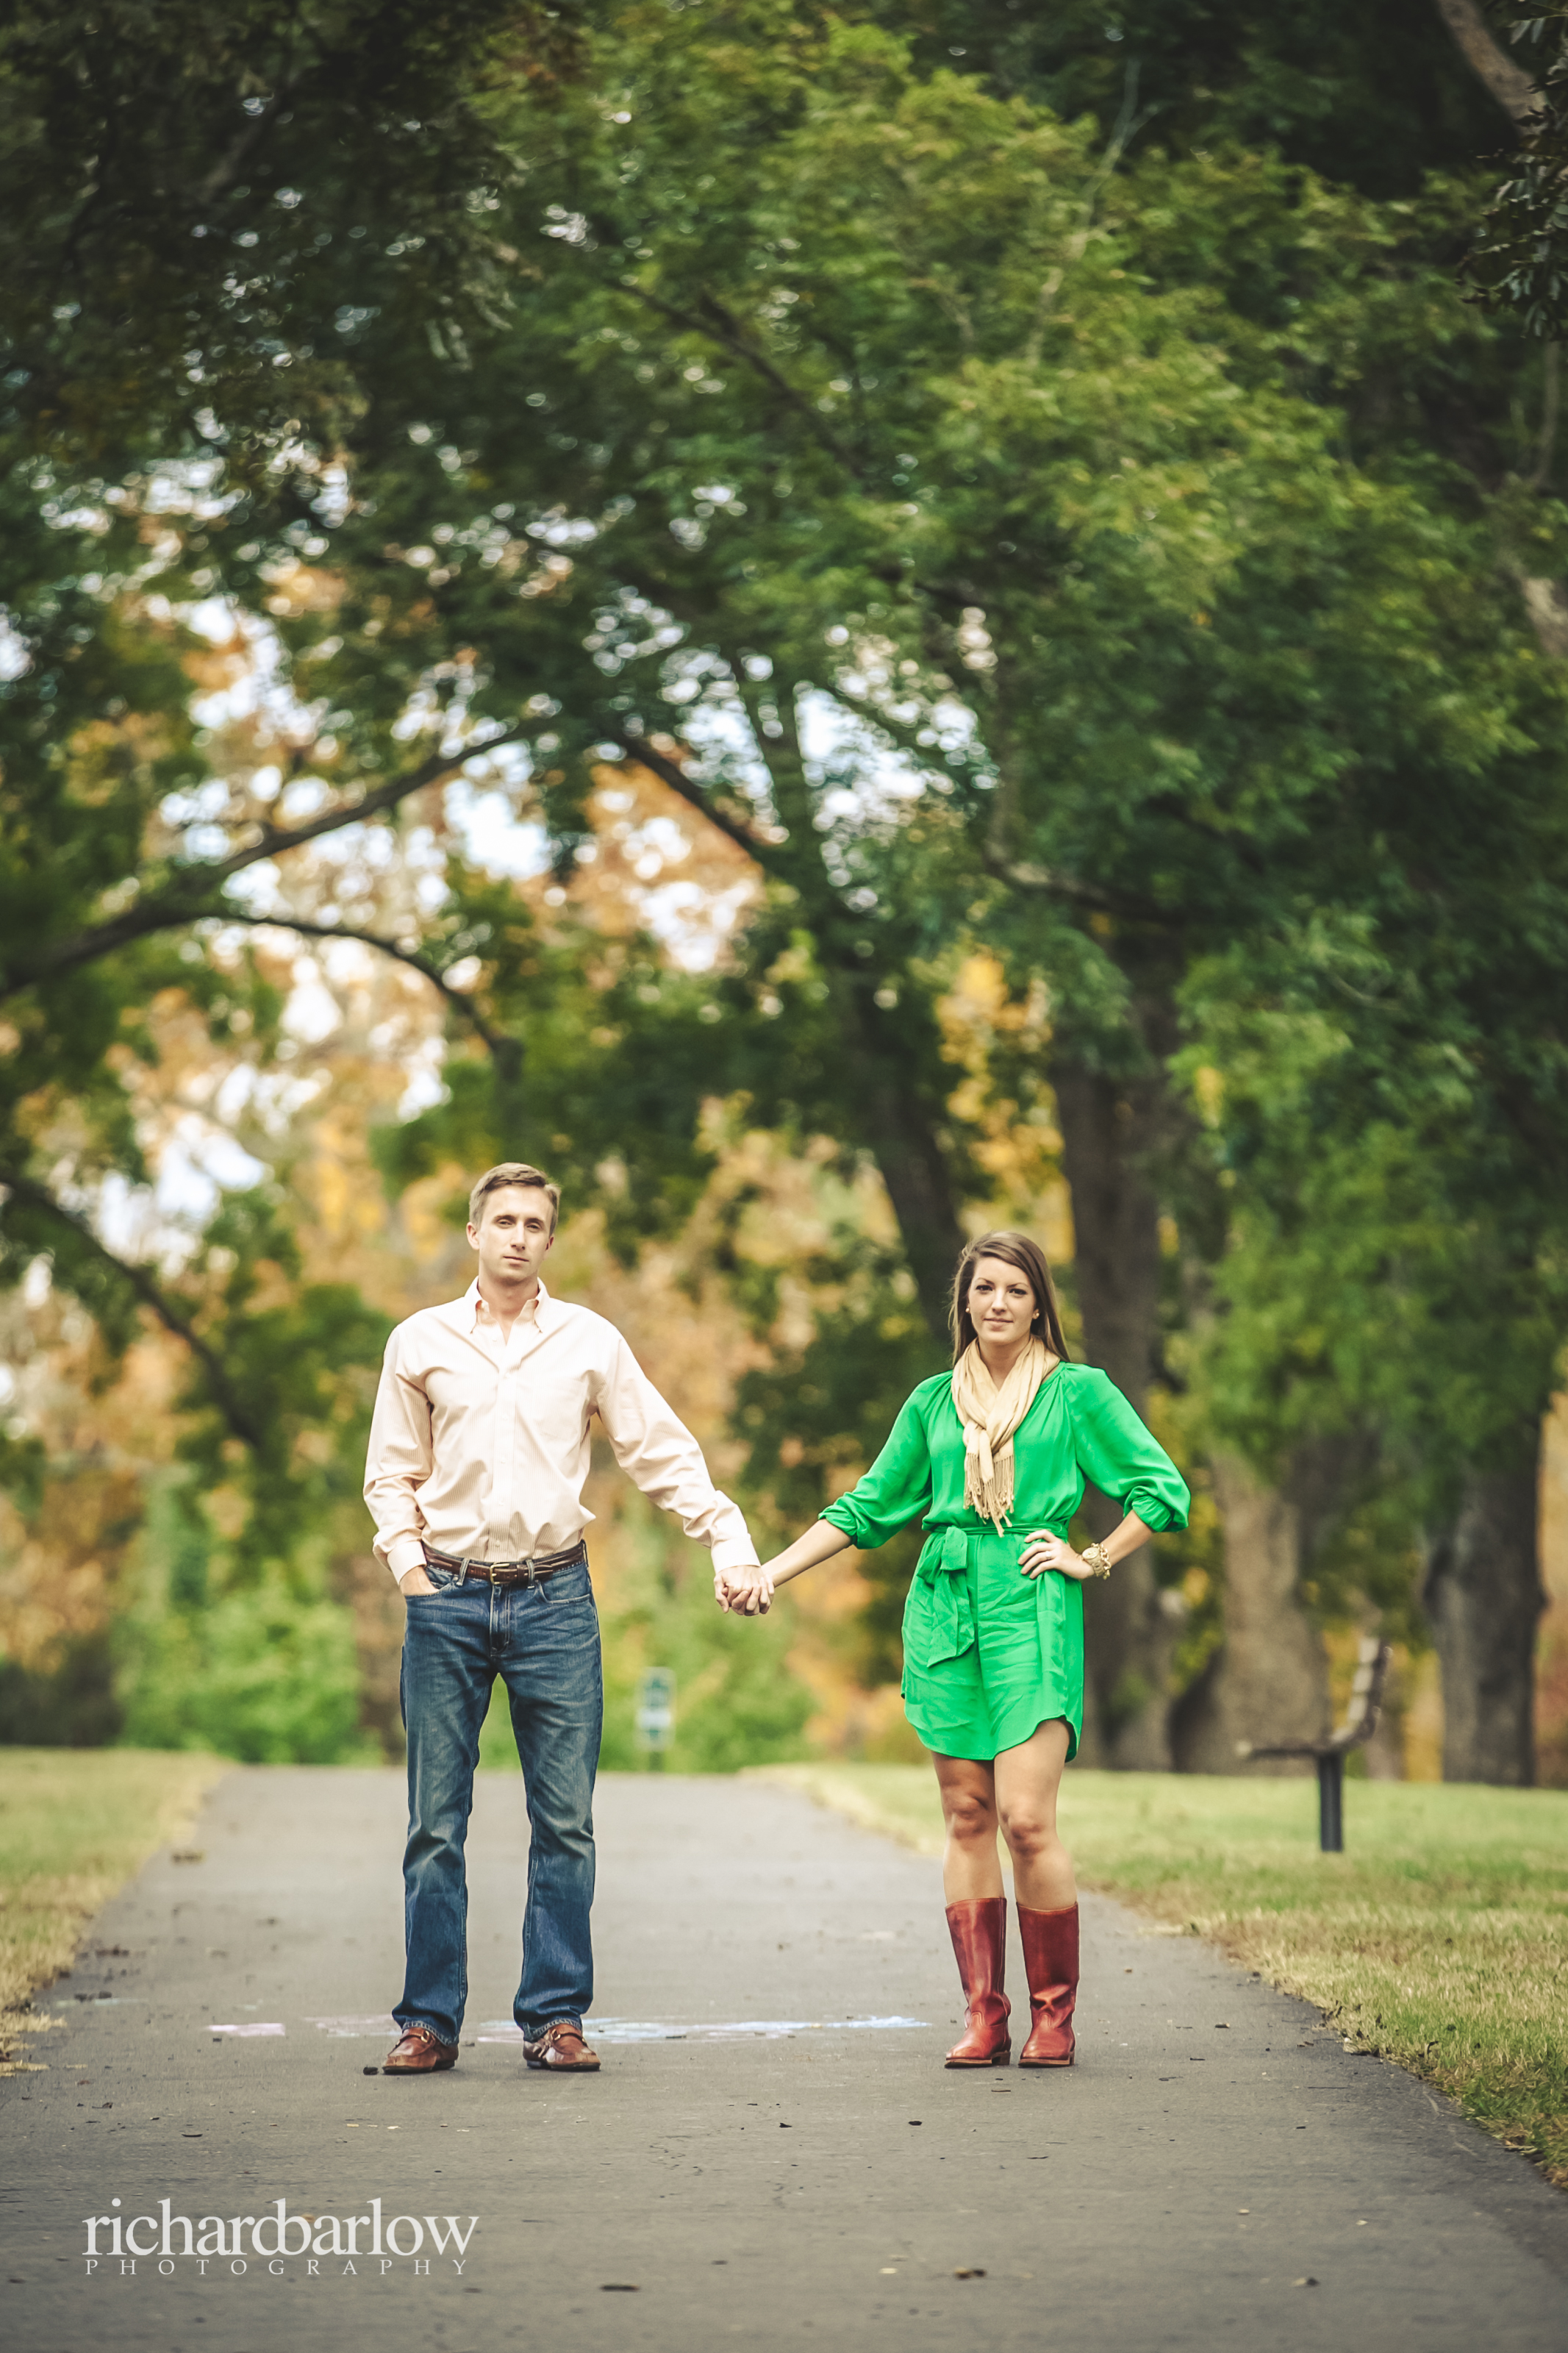 richard barlow photography - Graham and Lauren Engagement Session Wake Forest-4.jpg